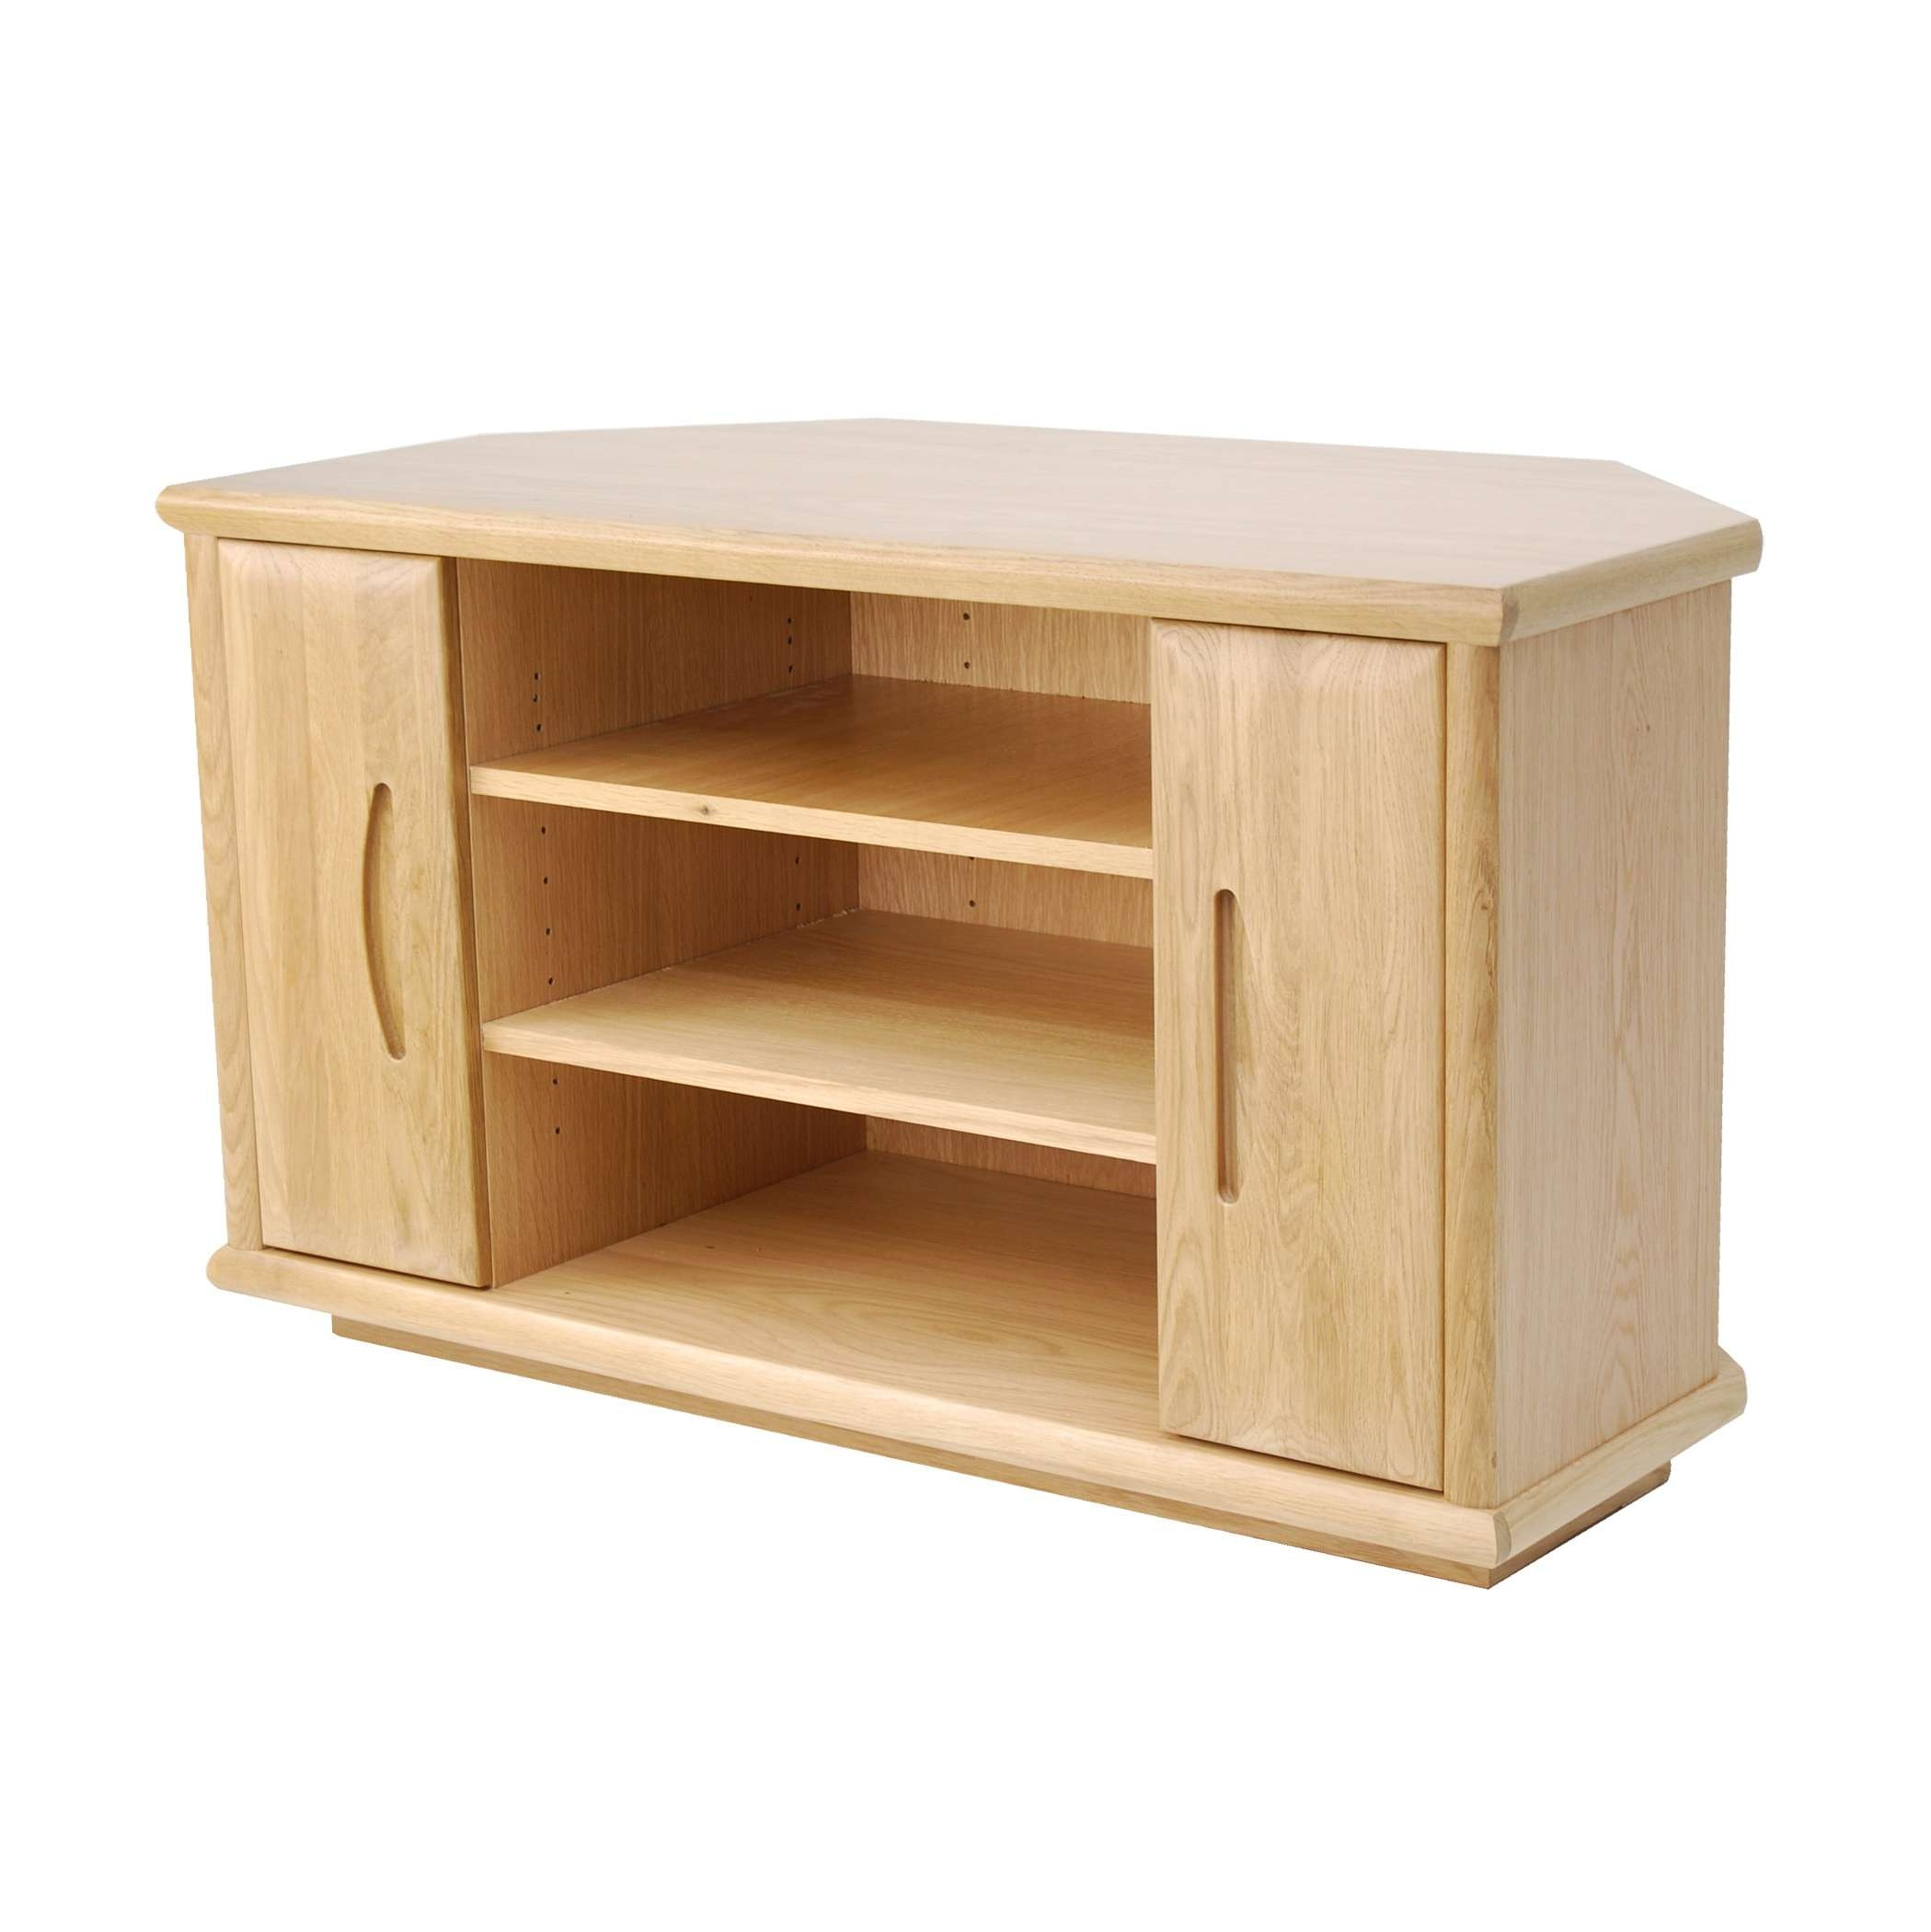 Oak Corner Tv Stand | Gola Furniture Uk Within Oak Tv Cabinets With Doors (View 17 of 20)